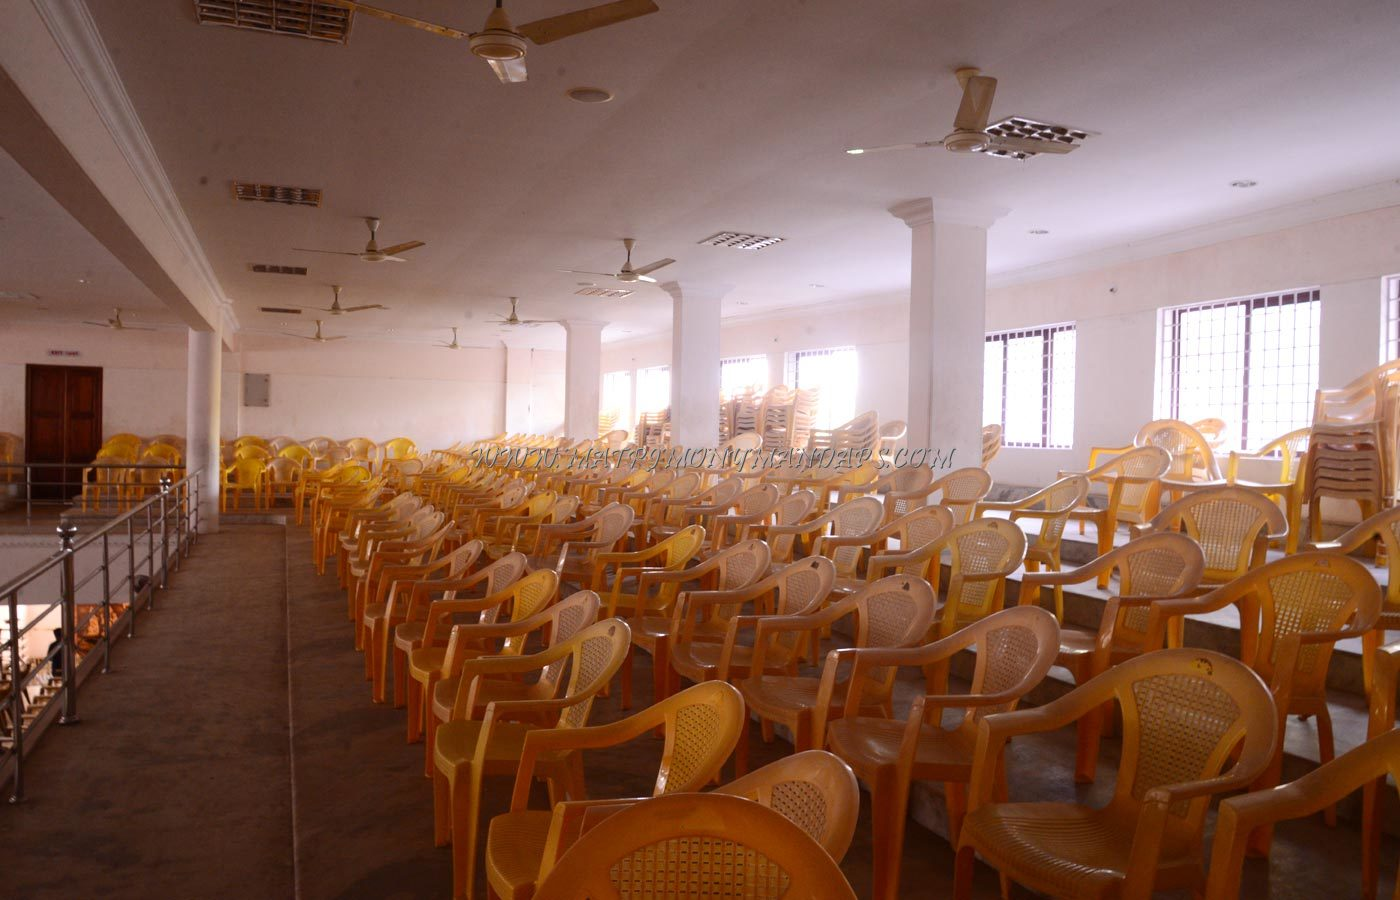 Find the availability of the Devunanda Auditorium in Neyyattinkara, Trivandrum and avail special offers